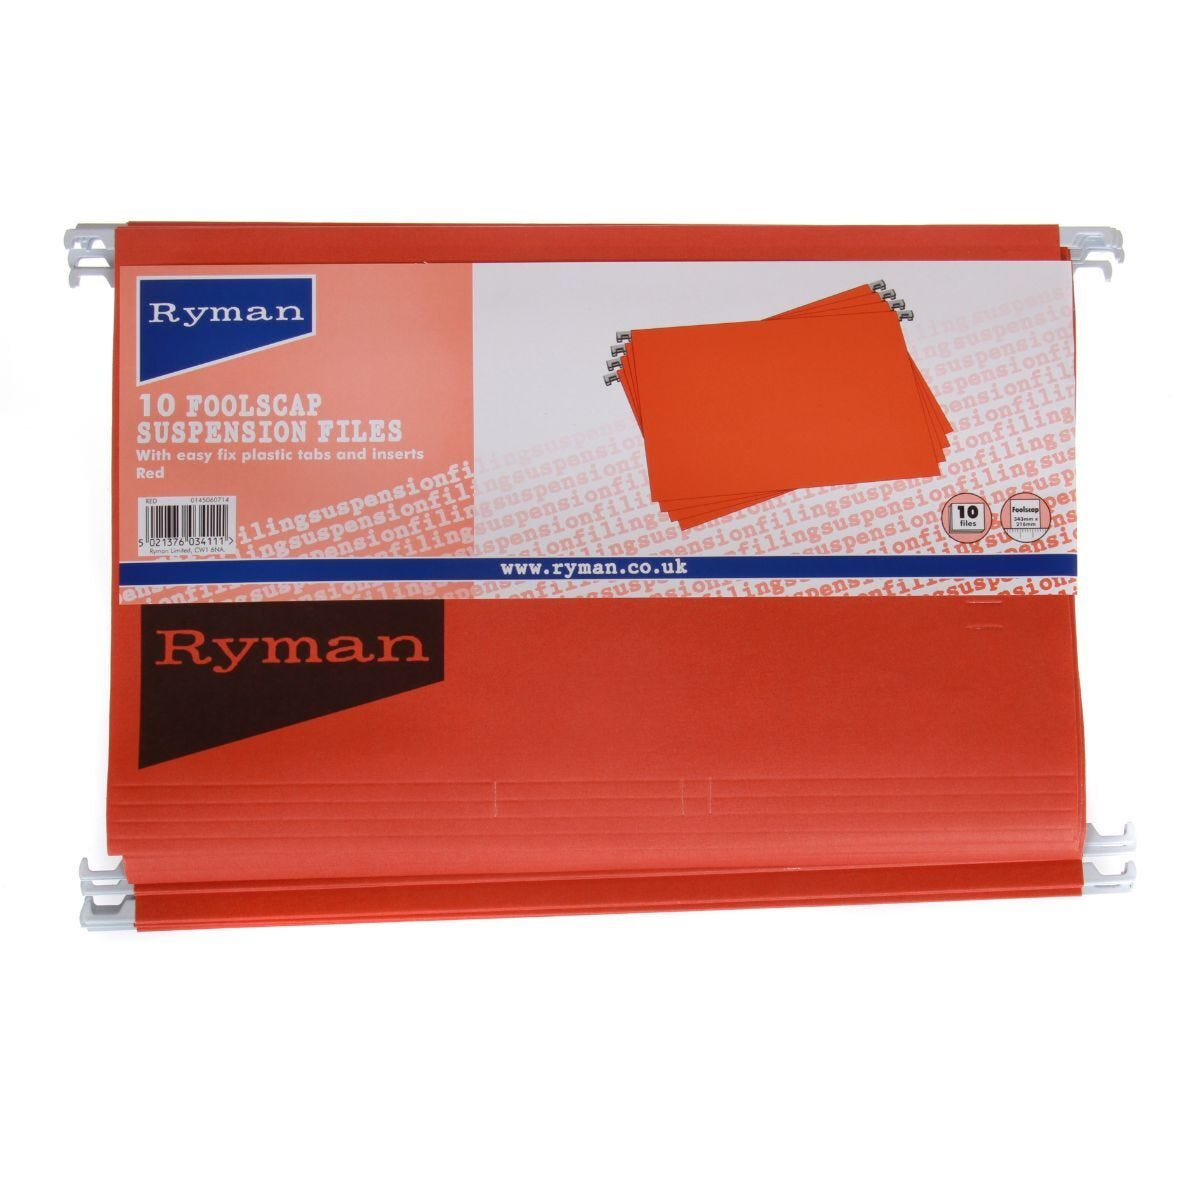 Ryman Suspension Files Foolscap Pack of 10 Red